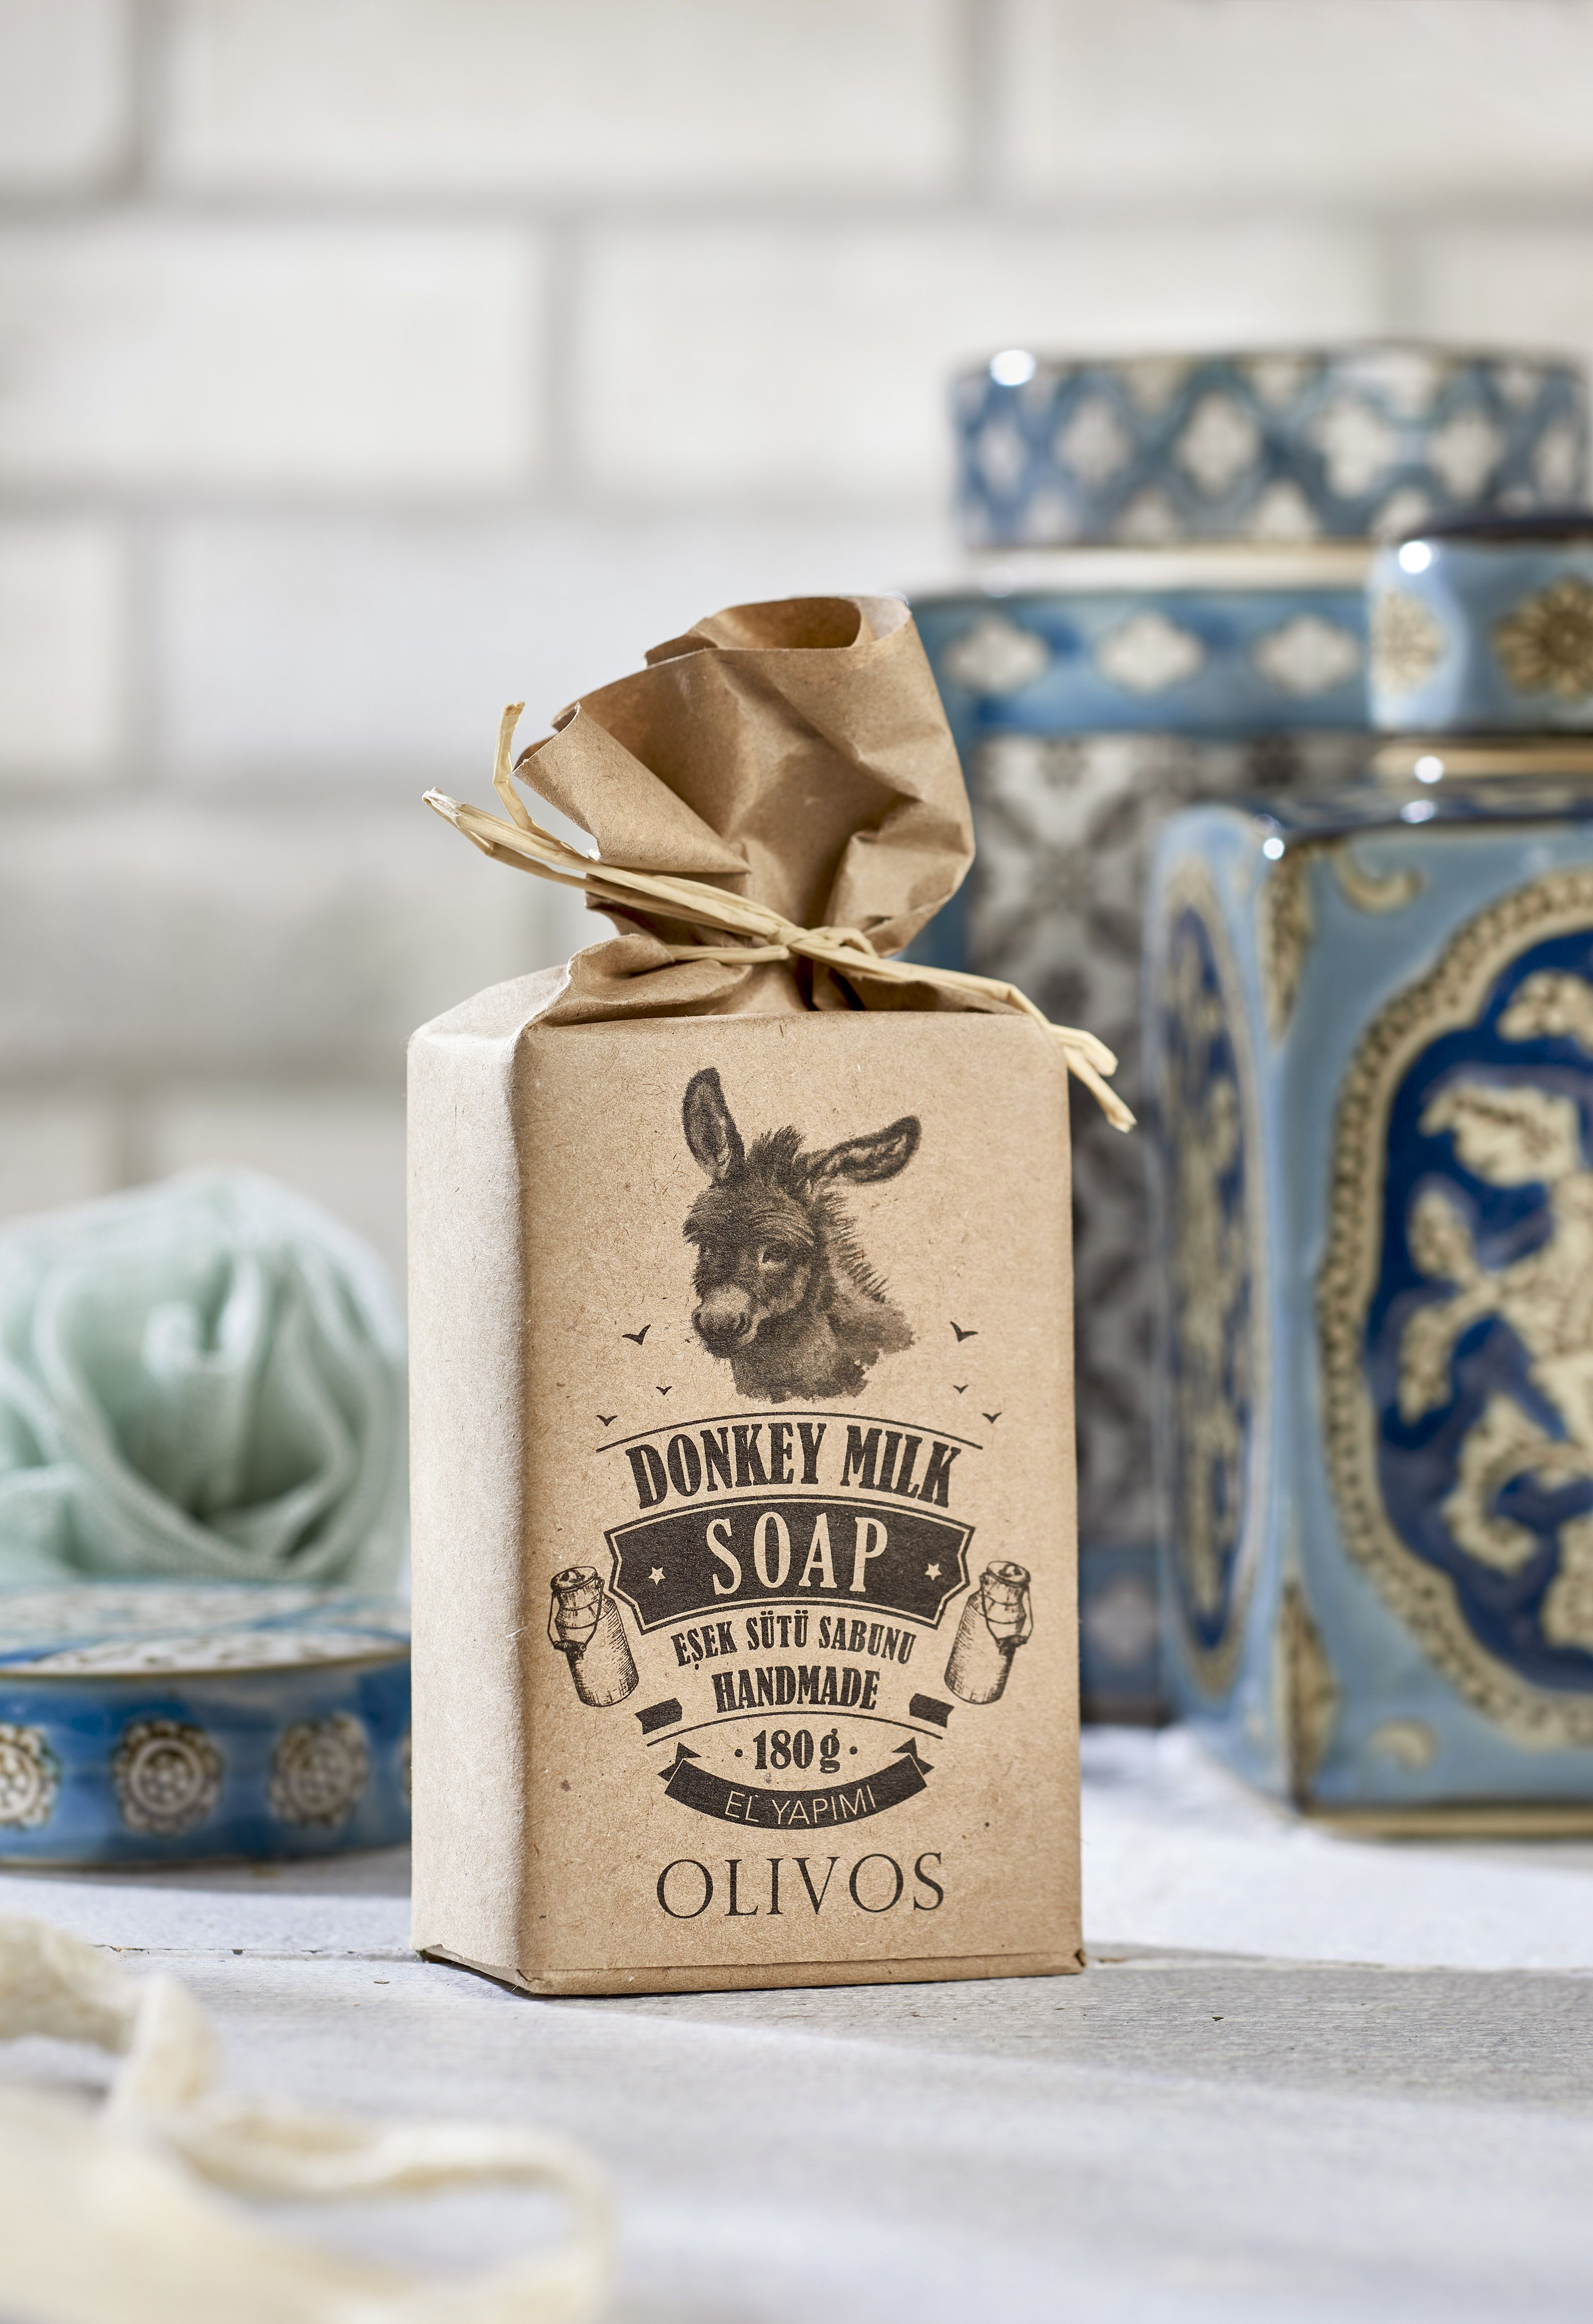 Handmade Olivos Soaps Donkey Milk Soap Is The Perfect Christmas